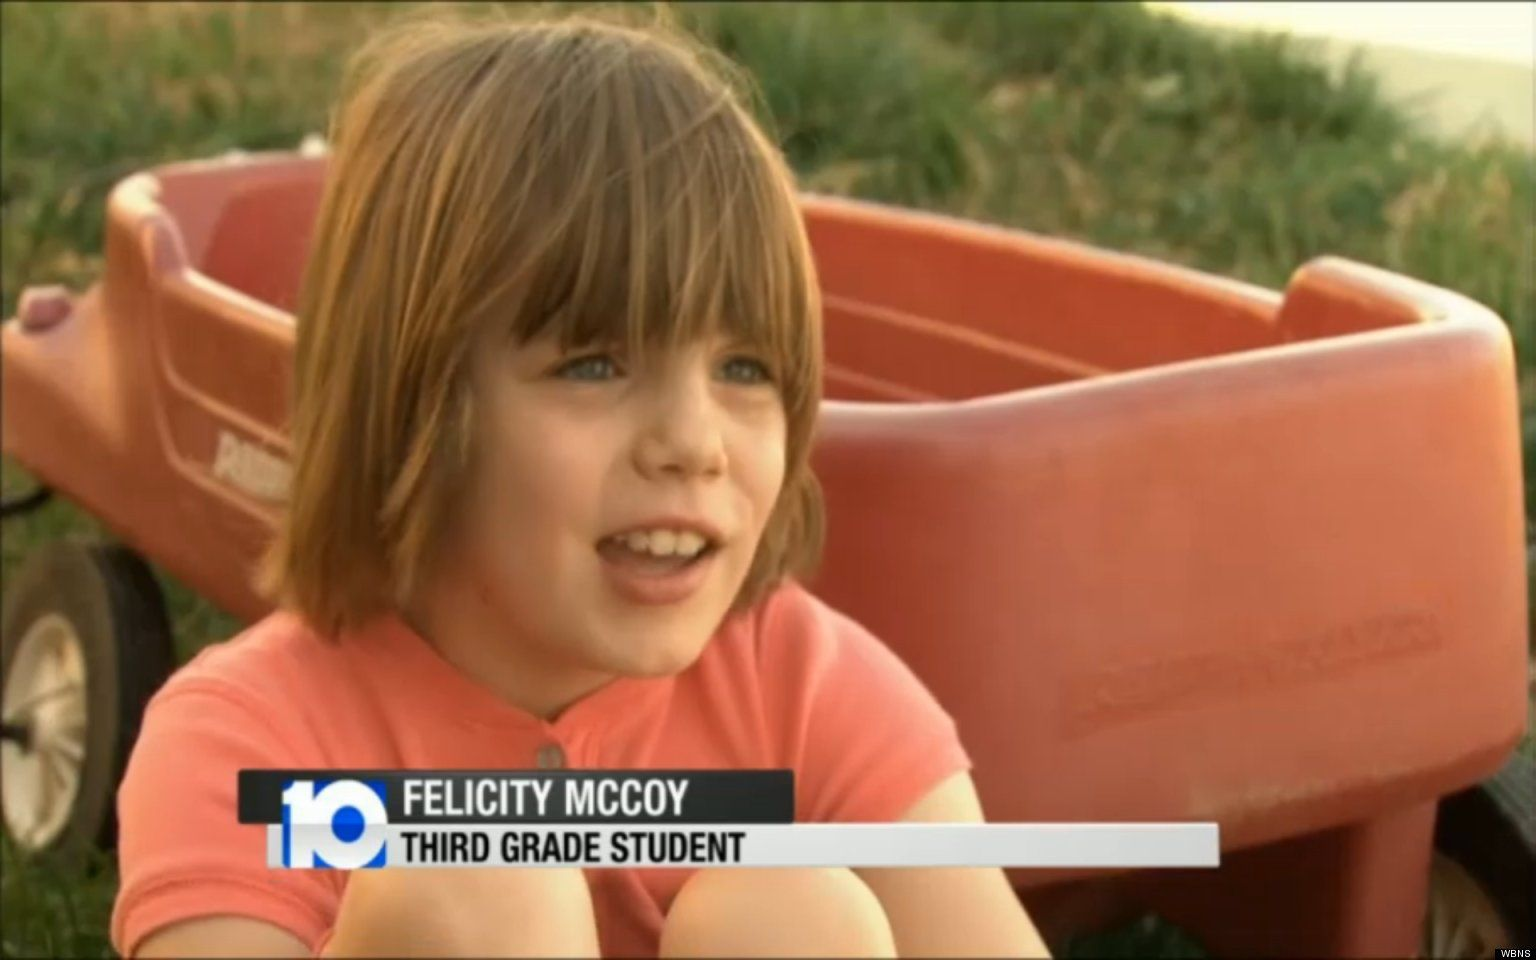 Felicity McCoy, Ohio Girl, Allegedly Beaten On School Bus By Teen Twice Her Age